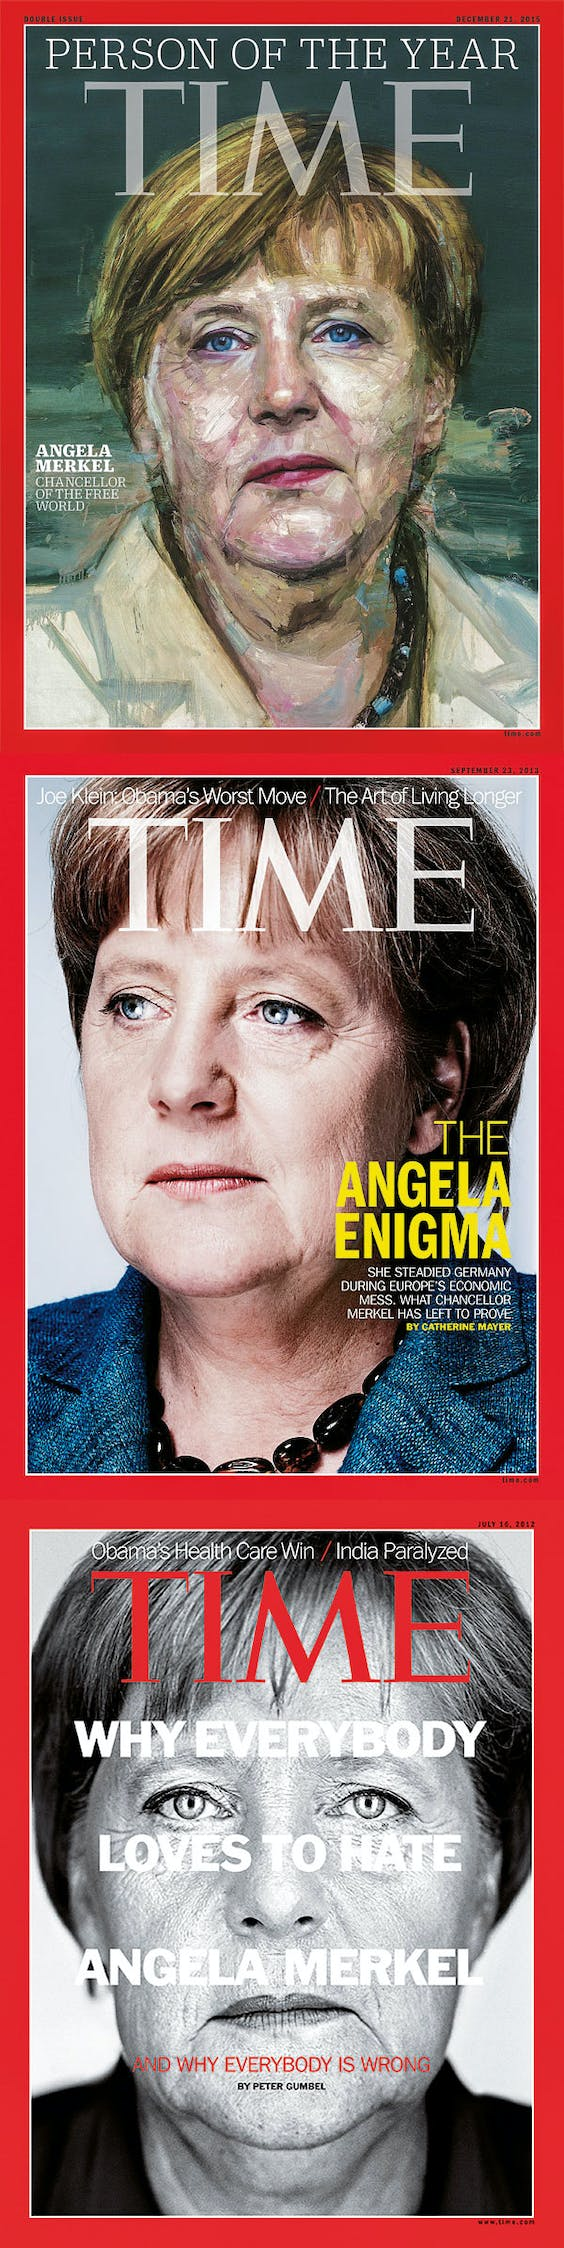 Van boven naar beneden: Time, Person of the Year, 2015; Time 2013; Time 2012.